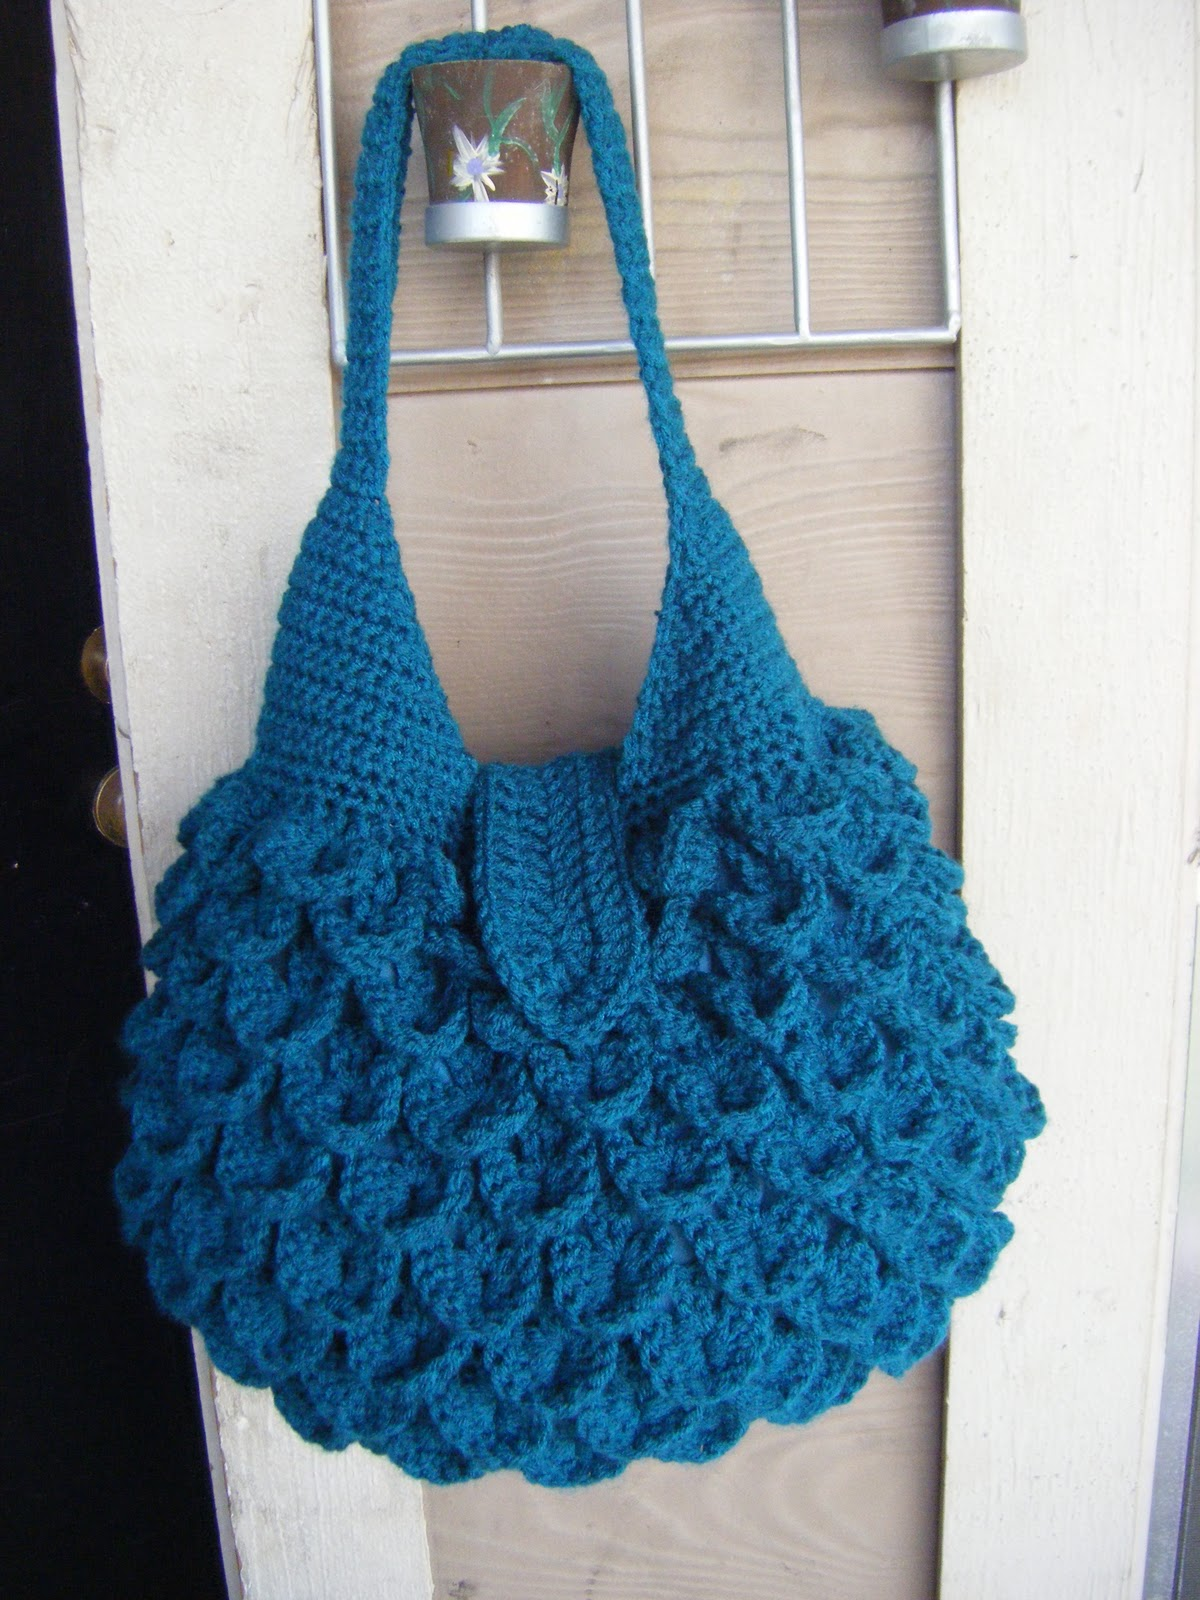 CROCHET SHOPPING BAG PATTERN – Crochet Club